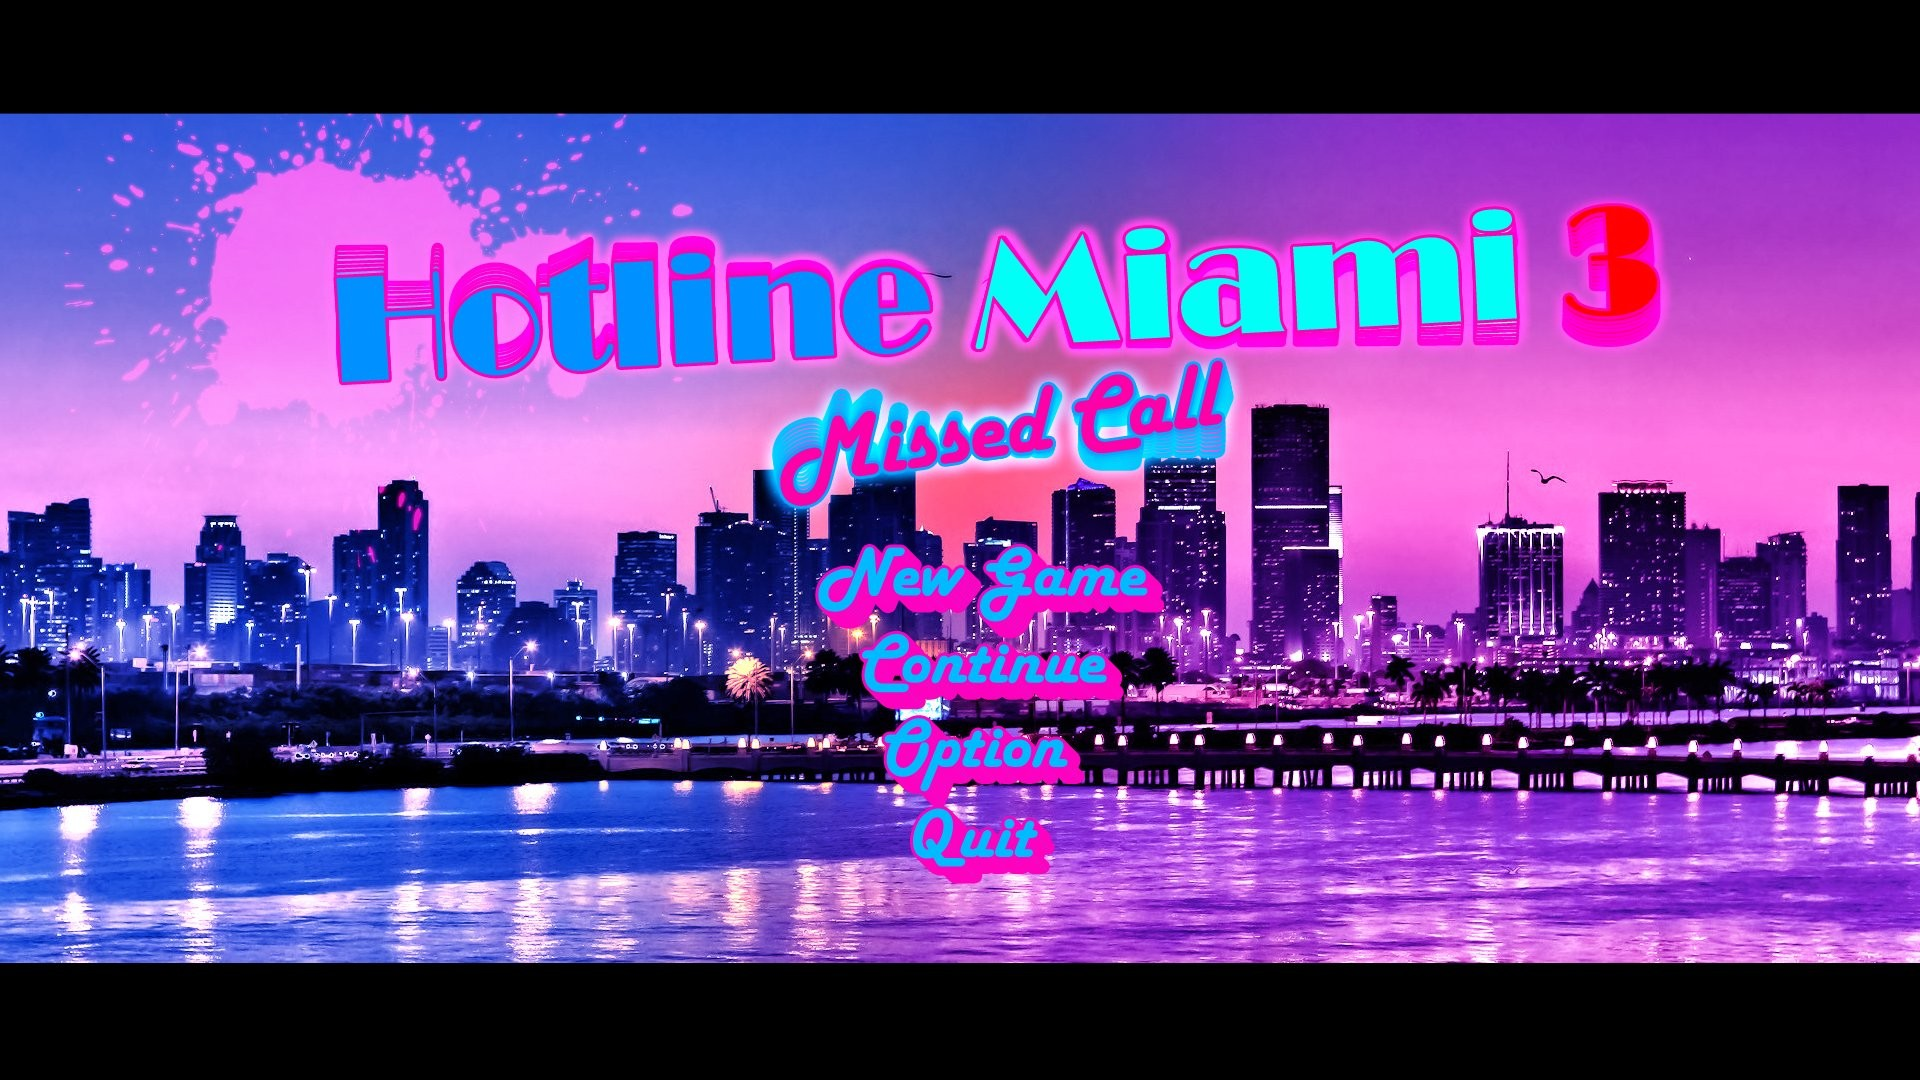 Hotline Miami Wallpaper 1920x1080: Hotline Miami Wallpaper HD (63+ Images